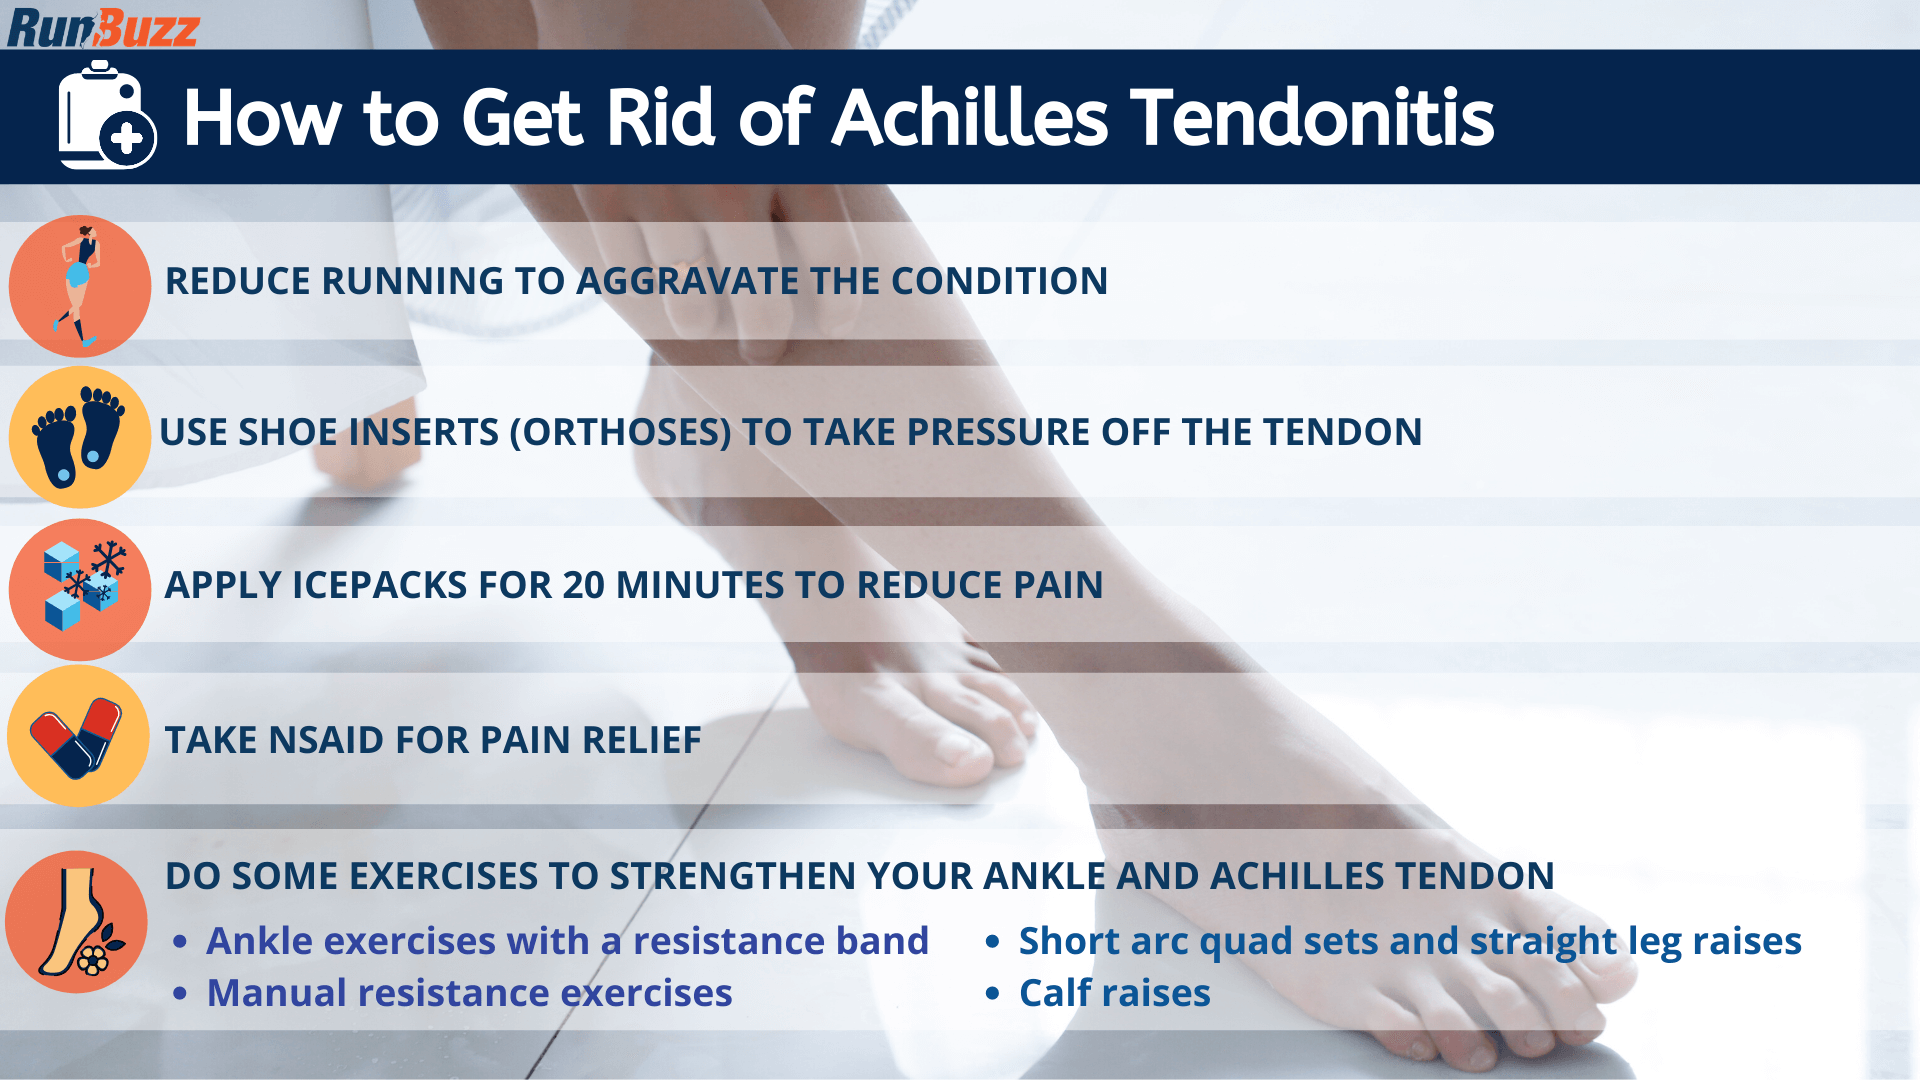 How-to-Get-Rid-of-Achilles-Tendonitis